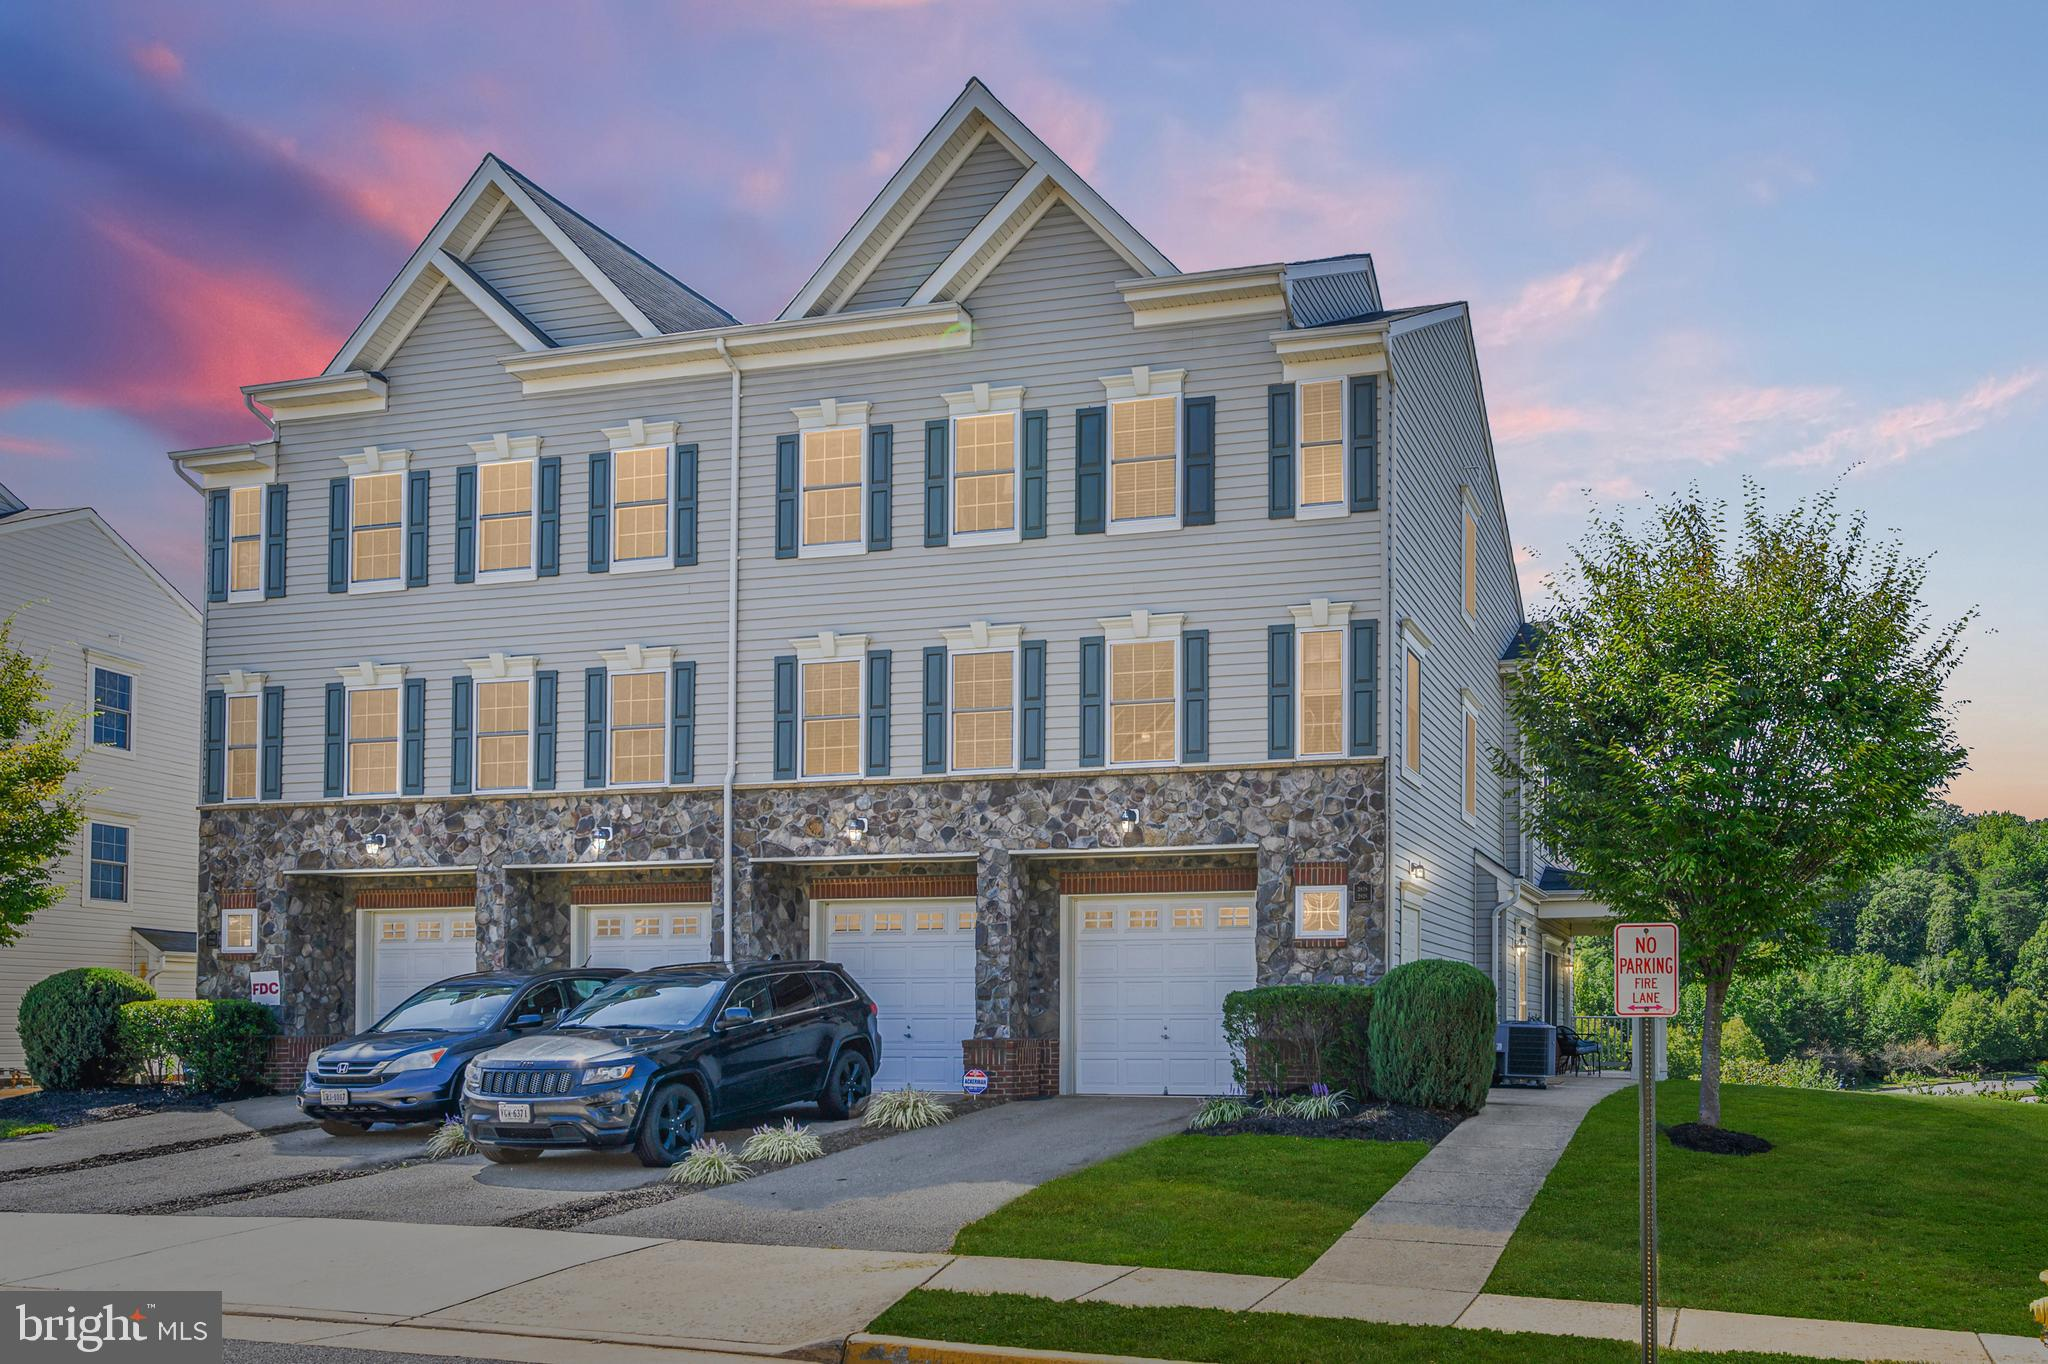 PRINSTINE MOVE IN READY CONDITION  3 level End Unit Townhouse Condo located minutes to Quantico, I95